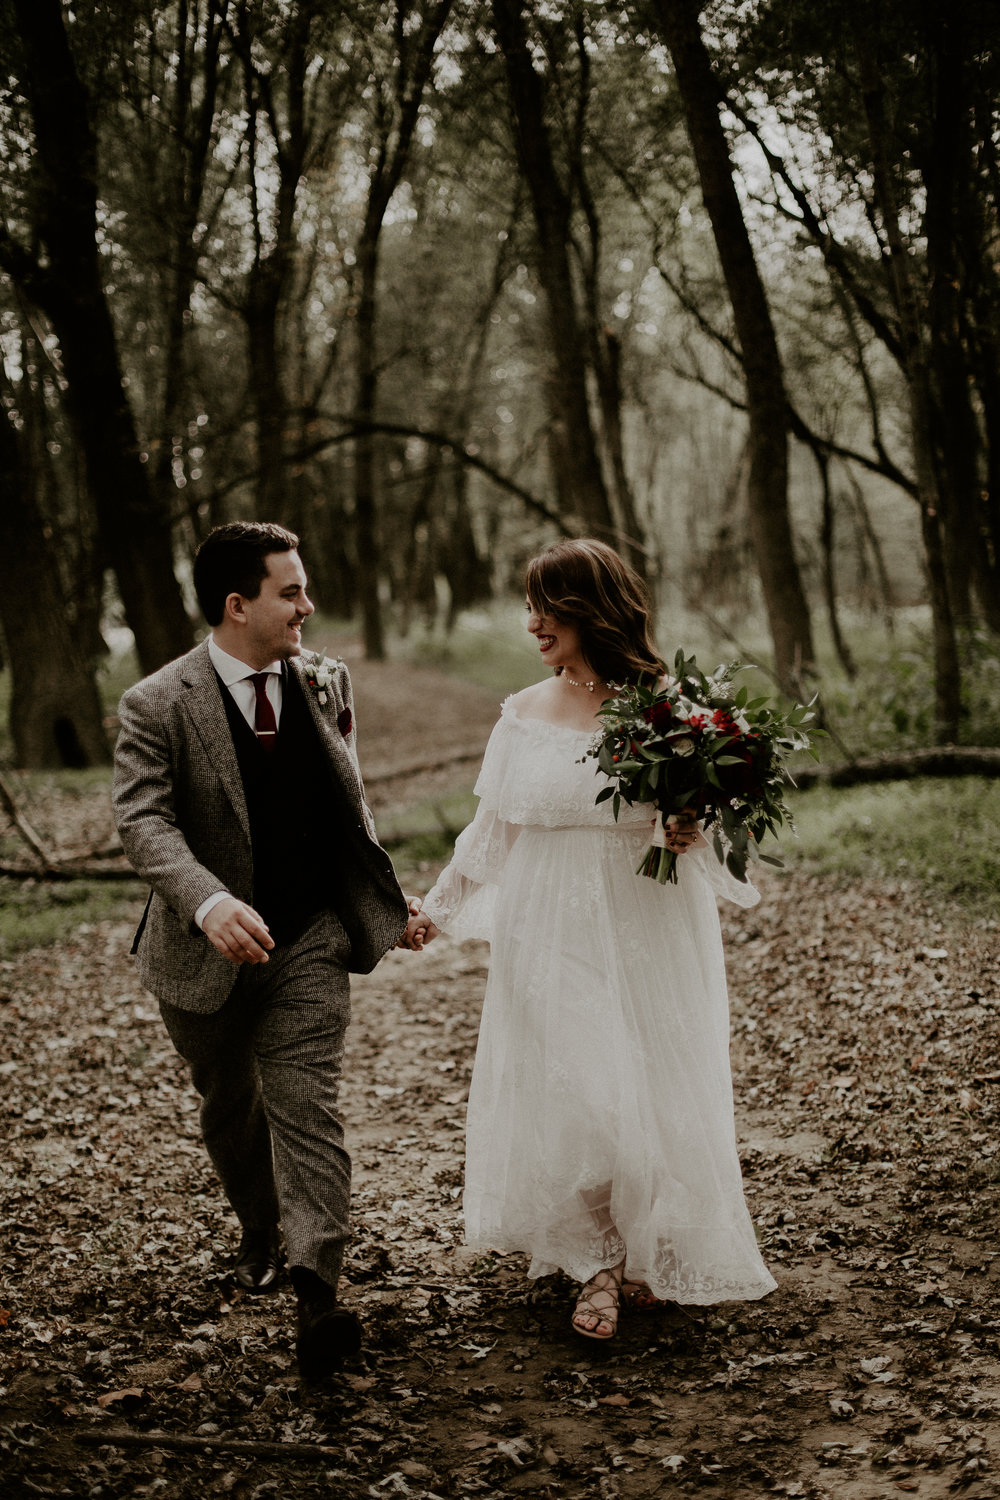 Jaymee_Jake_Vintage_Wedding_Cincinnati-EDIT-150.JPG